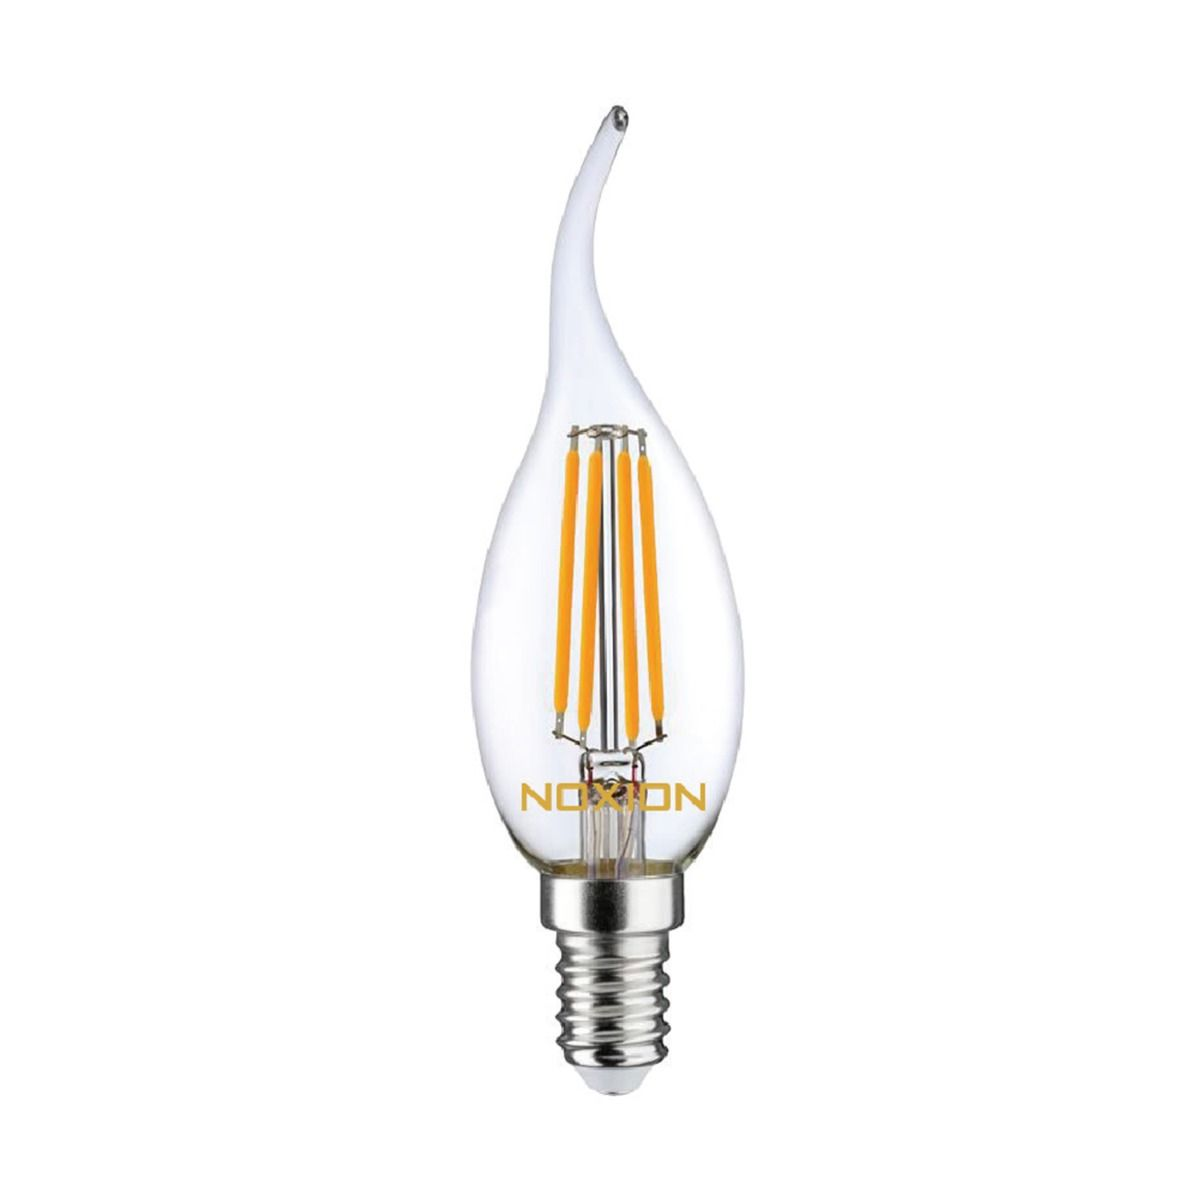 Noxion Lucent Filament LED Candle 4.5W 827 BA35 E14 Clear   Dimmable - Replacer for 40W